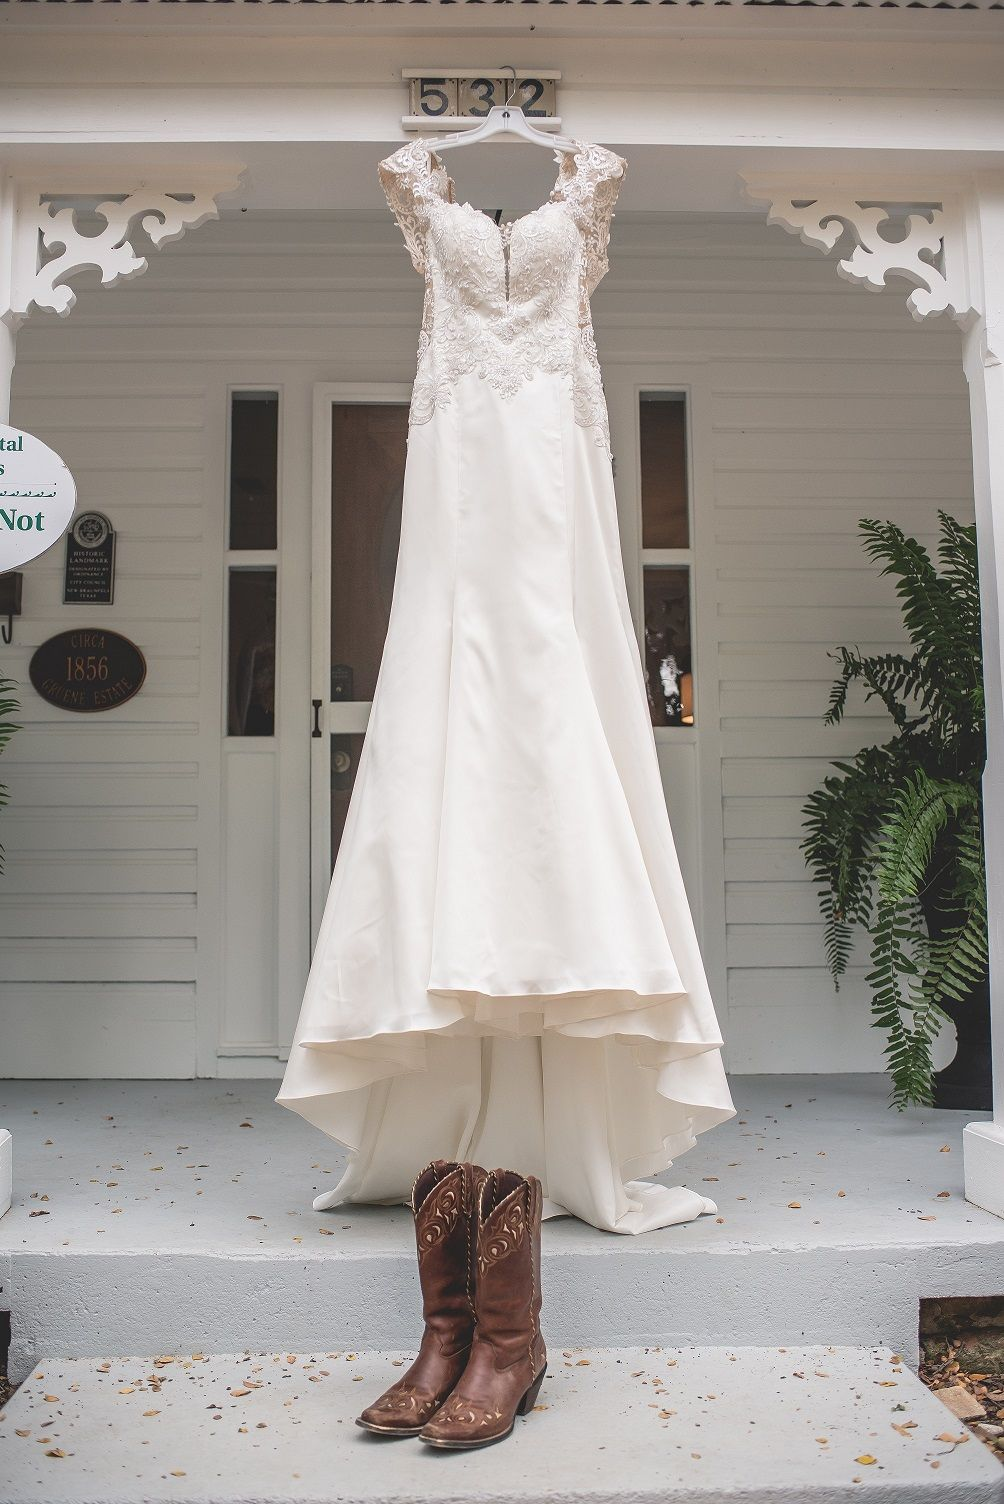 Andrea deane scoop neck line lace wedding gown at a rustic wedding